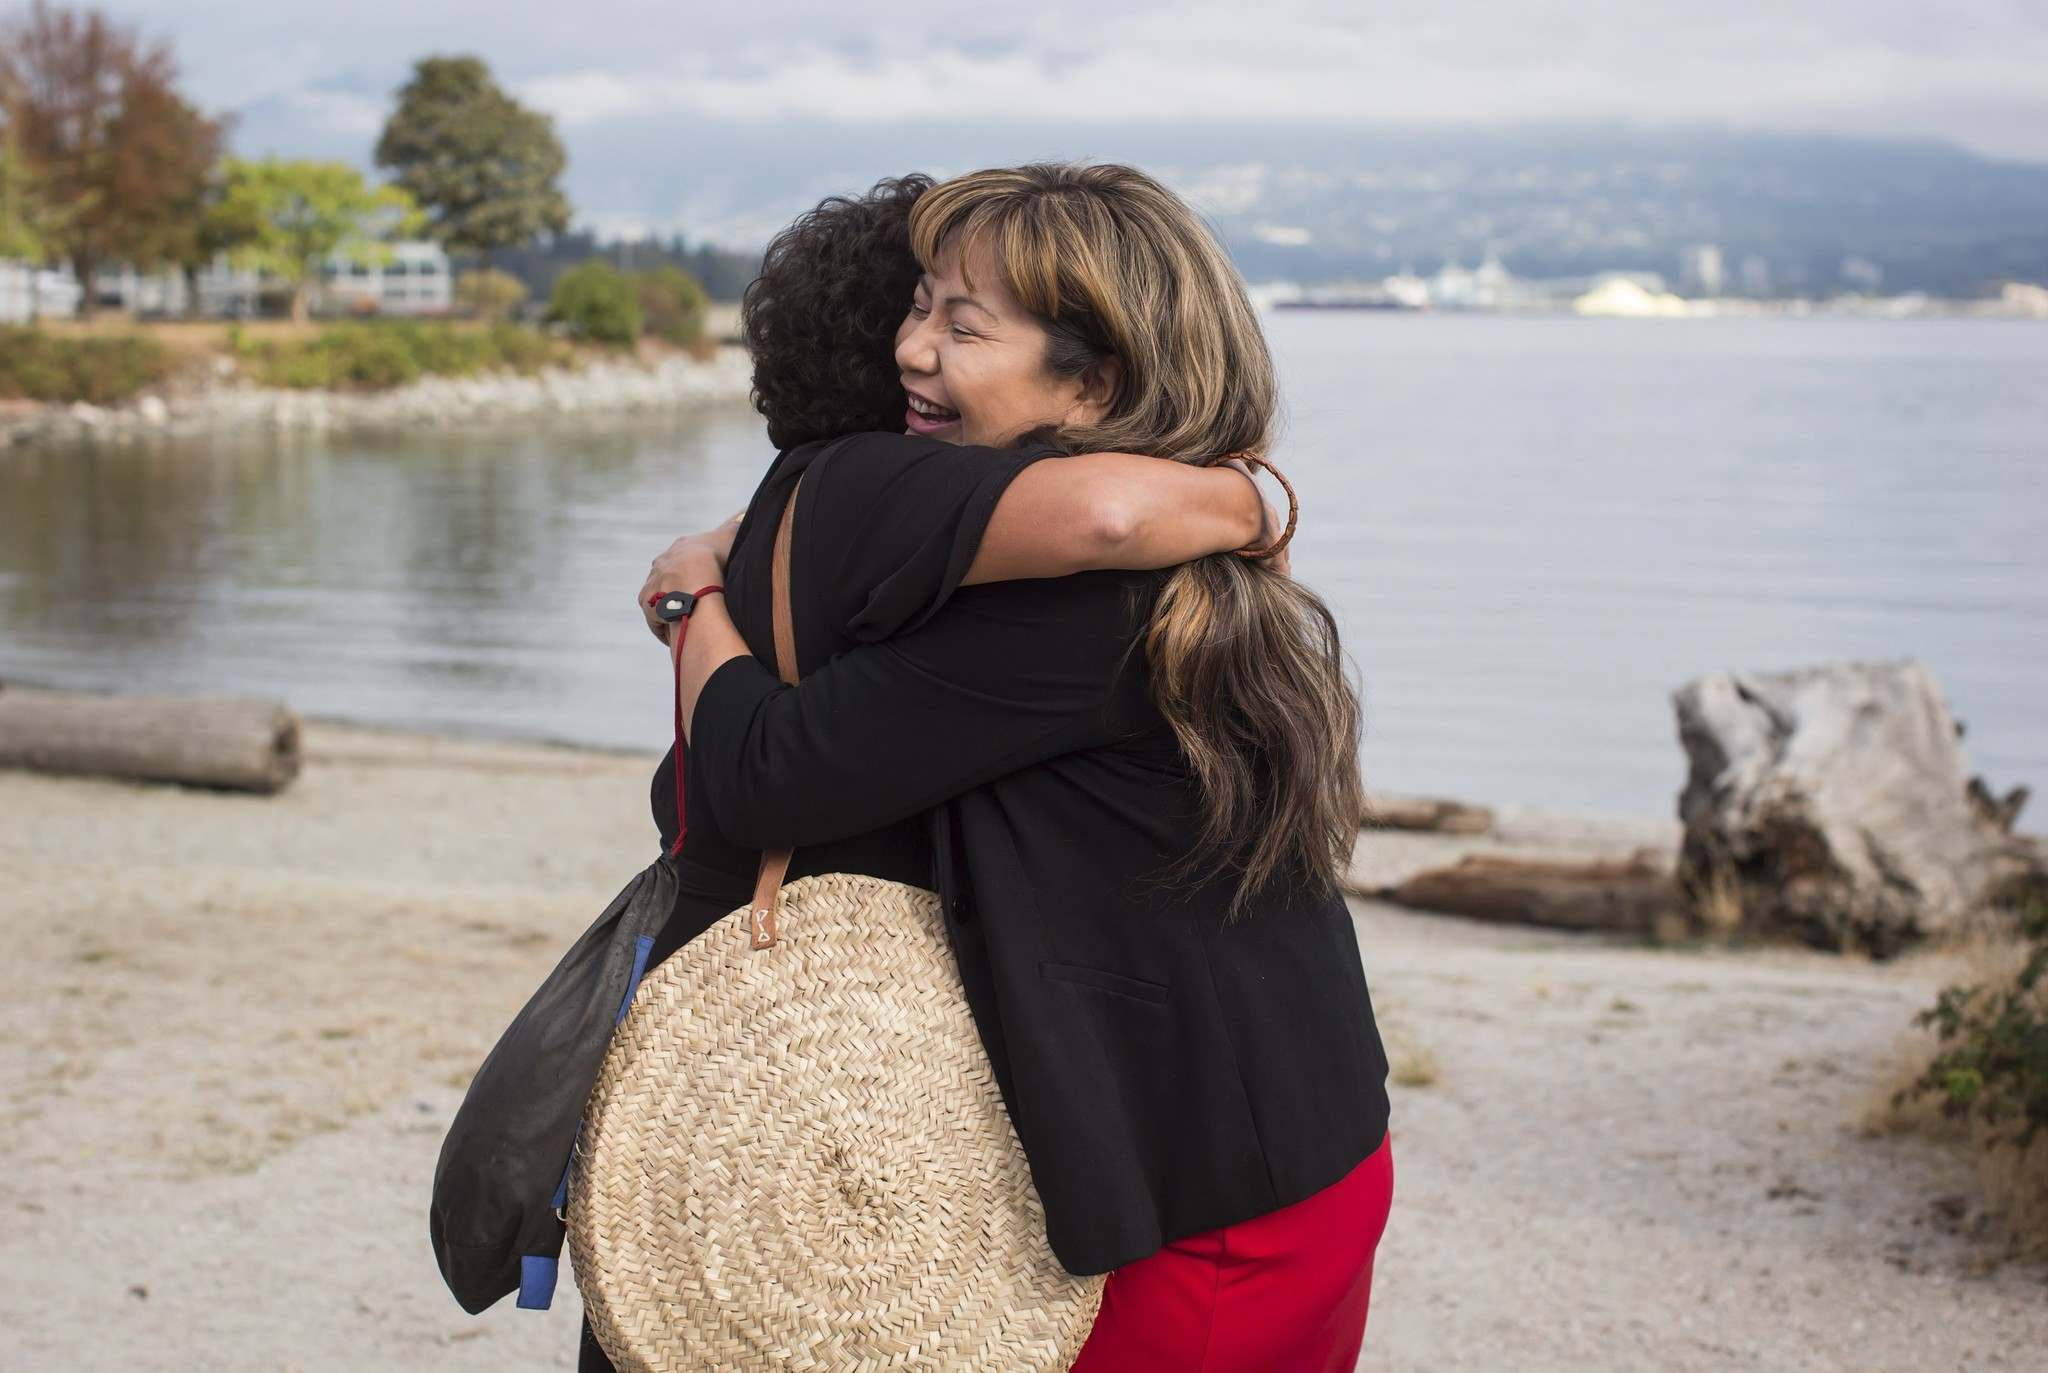 Amanda Nahanee, right, a descendant and cultural ambassador of the Squamish and Nisga&#39;a Nations, embraces Tsleil-Waututh Nation councillor Charlene Aleck in celebration before First Nations leaders respond to a Federal Court of Appeal ruling on the Kinder Morgan Trans Mountain Pipeline expansio. (Darryl Dyck / The Canadian Press)</p>